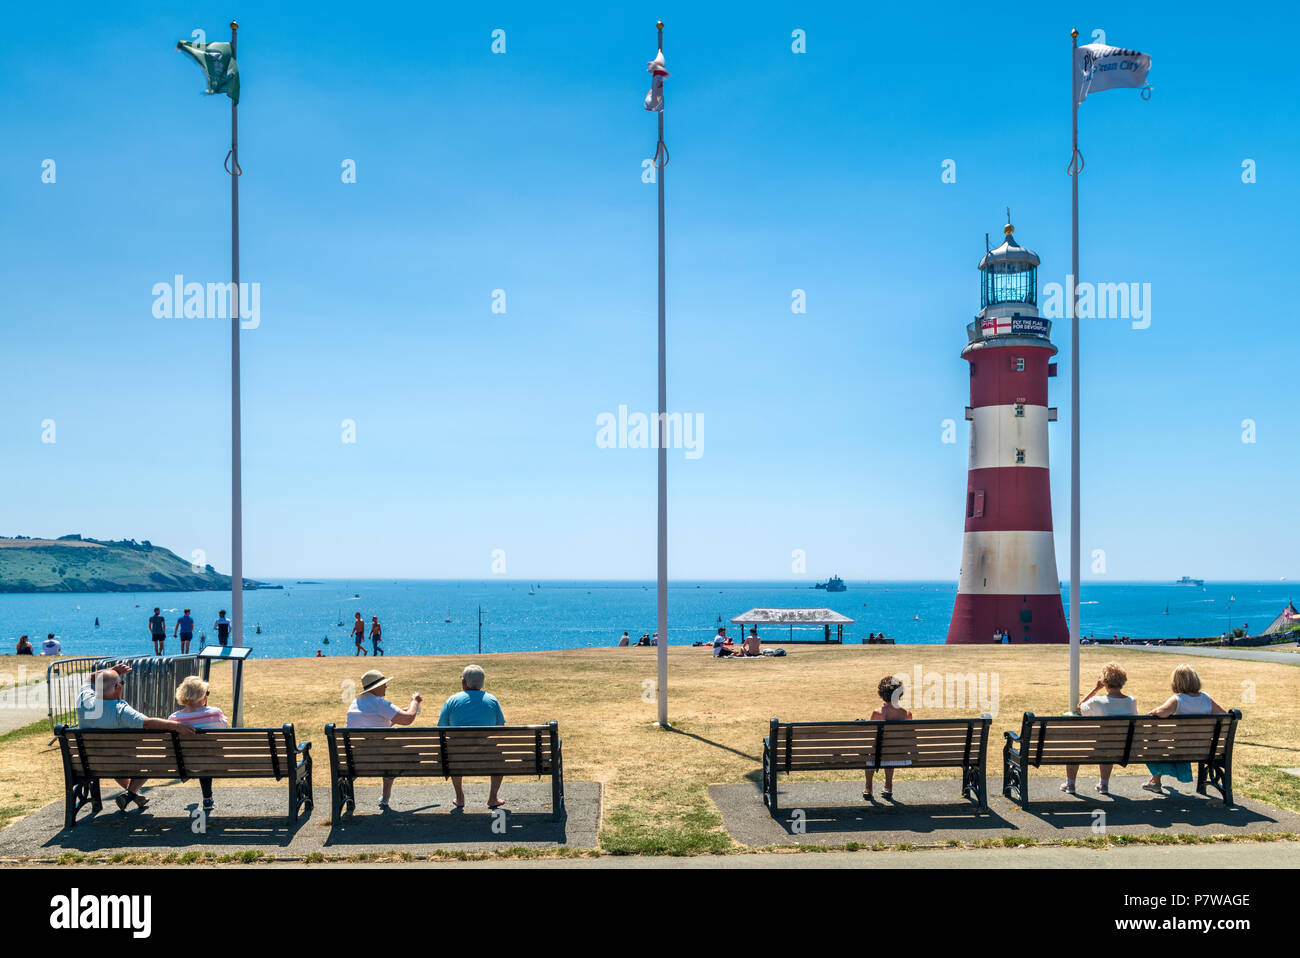 Plymouth, UK. 9th July 2018. UK Weather - The heatwave continues in the South West of England with no sign of it breaking as people soak up the sunshine on Plymouth Hoe. Credit: Terry Mathews/Alamy Live News - Stock Image